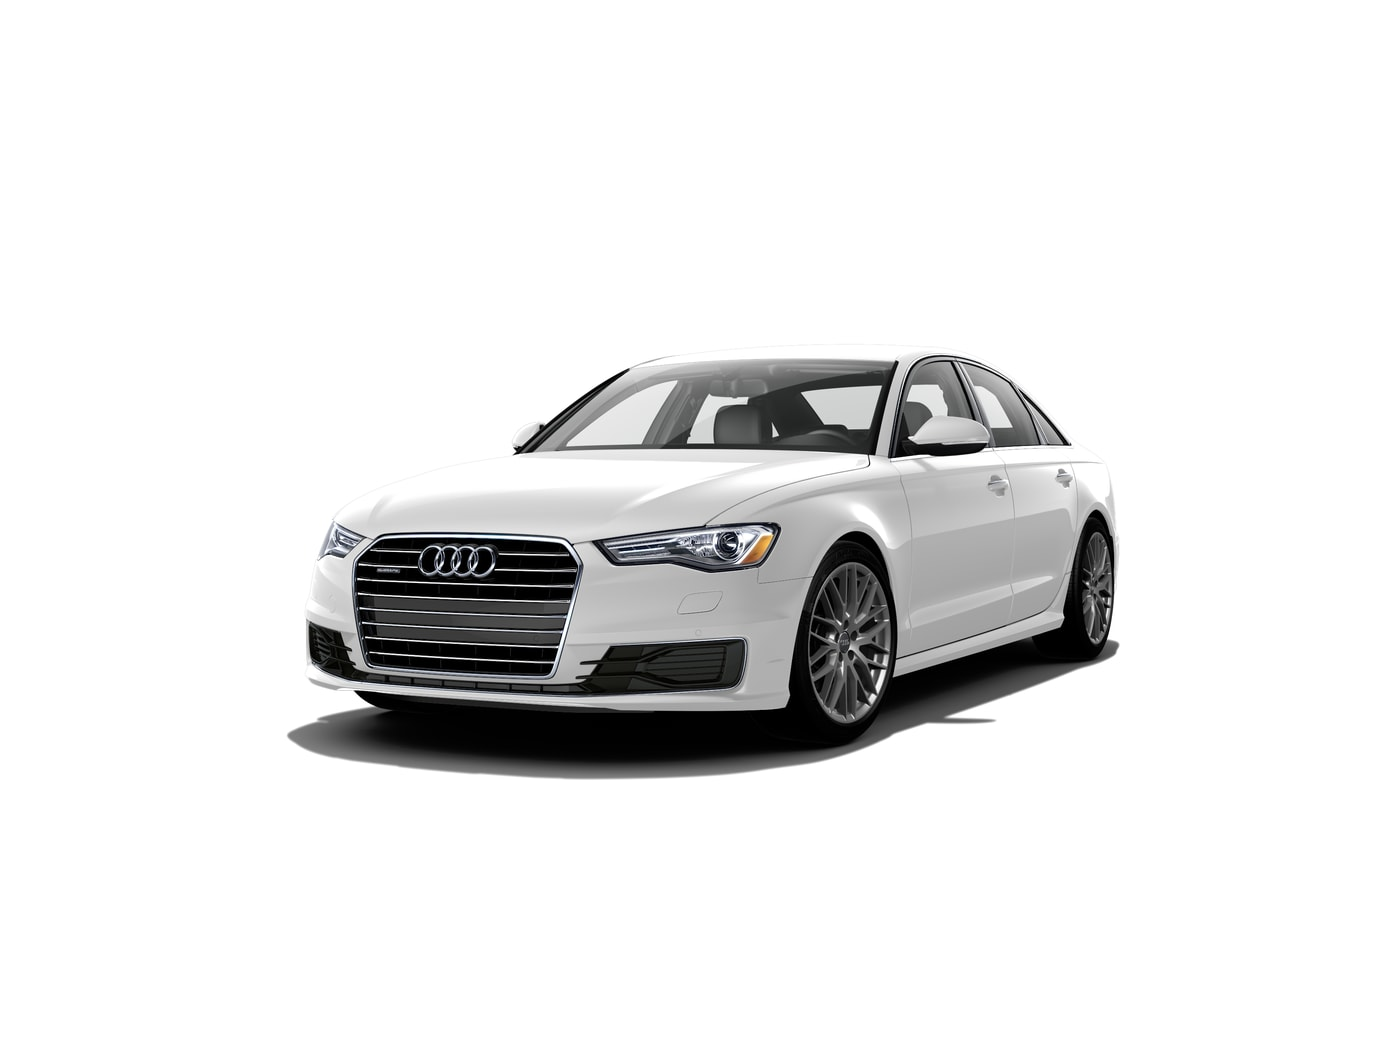 New 2016 Audi A6 For Sale Near Chicago At Audi Morton